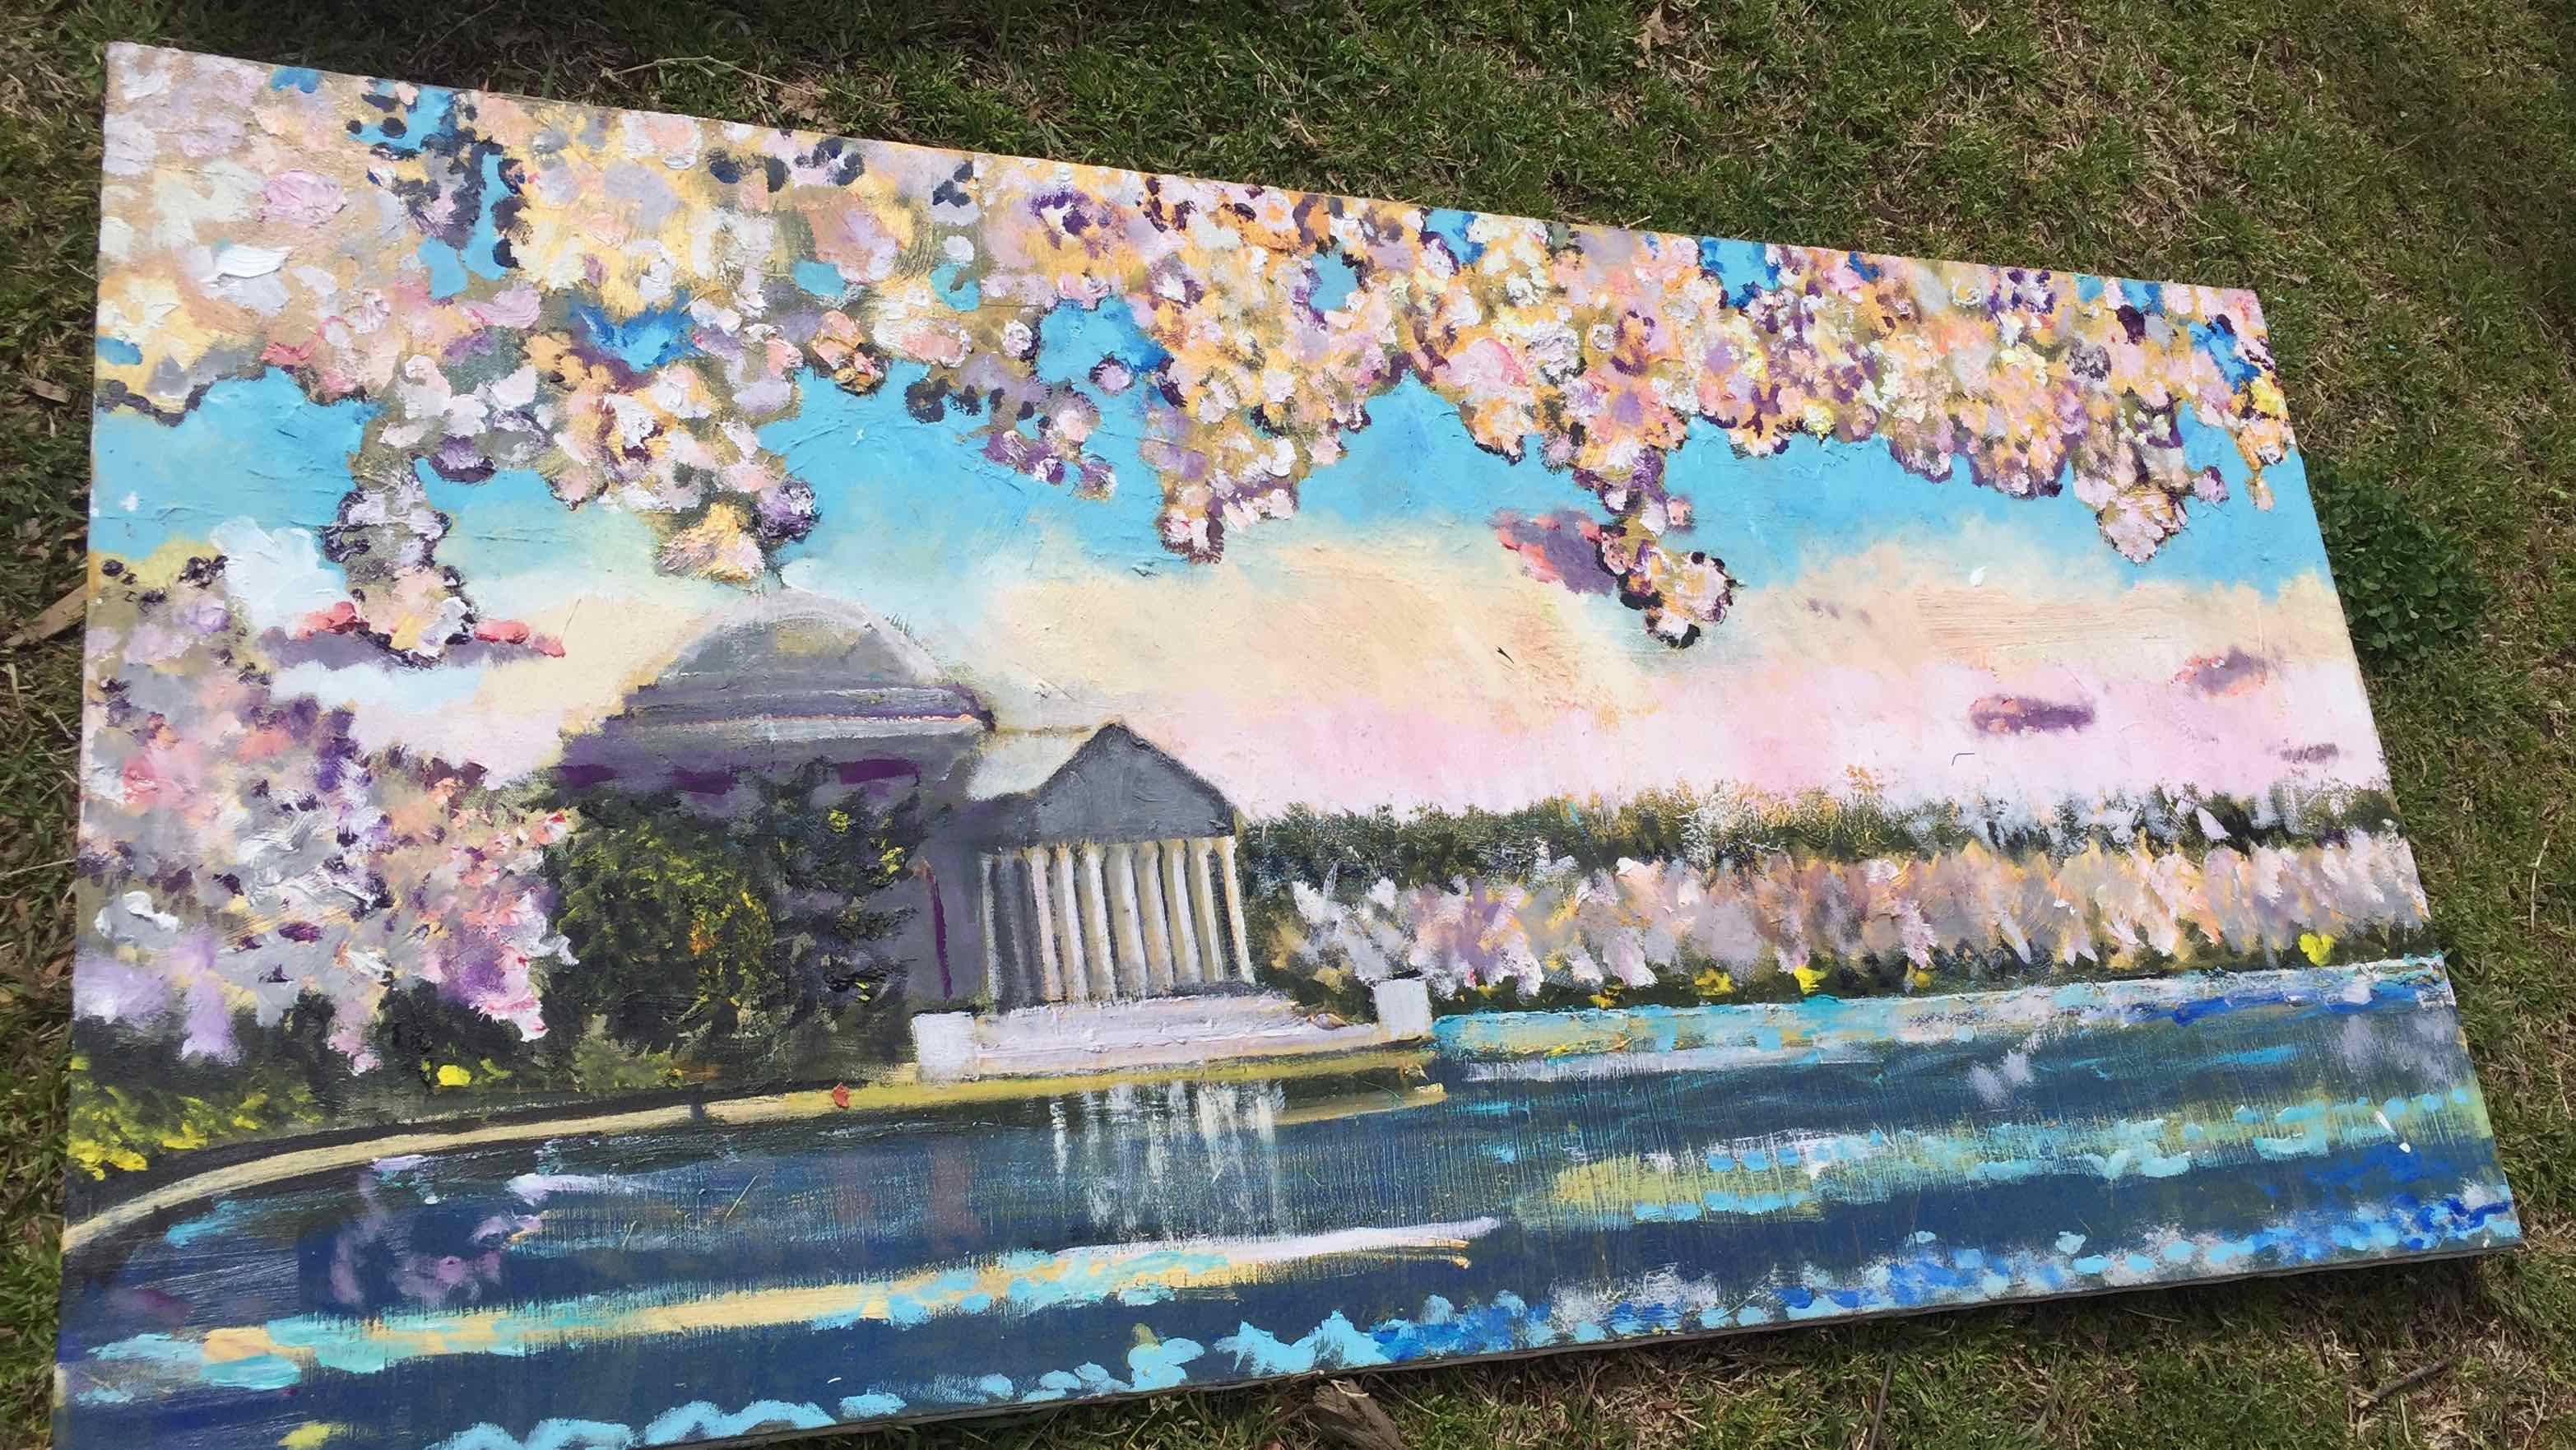 Photograph: Painting of the Jefferson Memorial framed in the branches of a cherry blossom tree